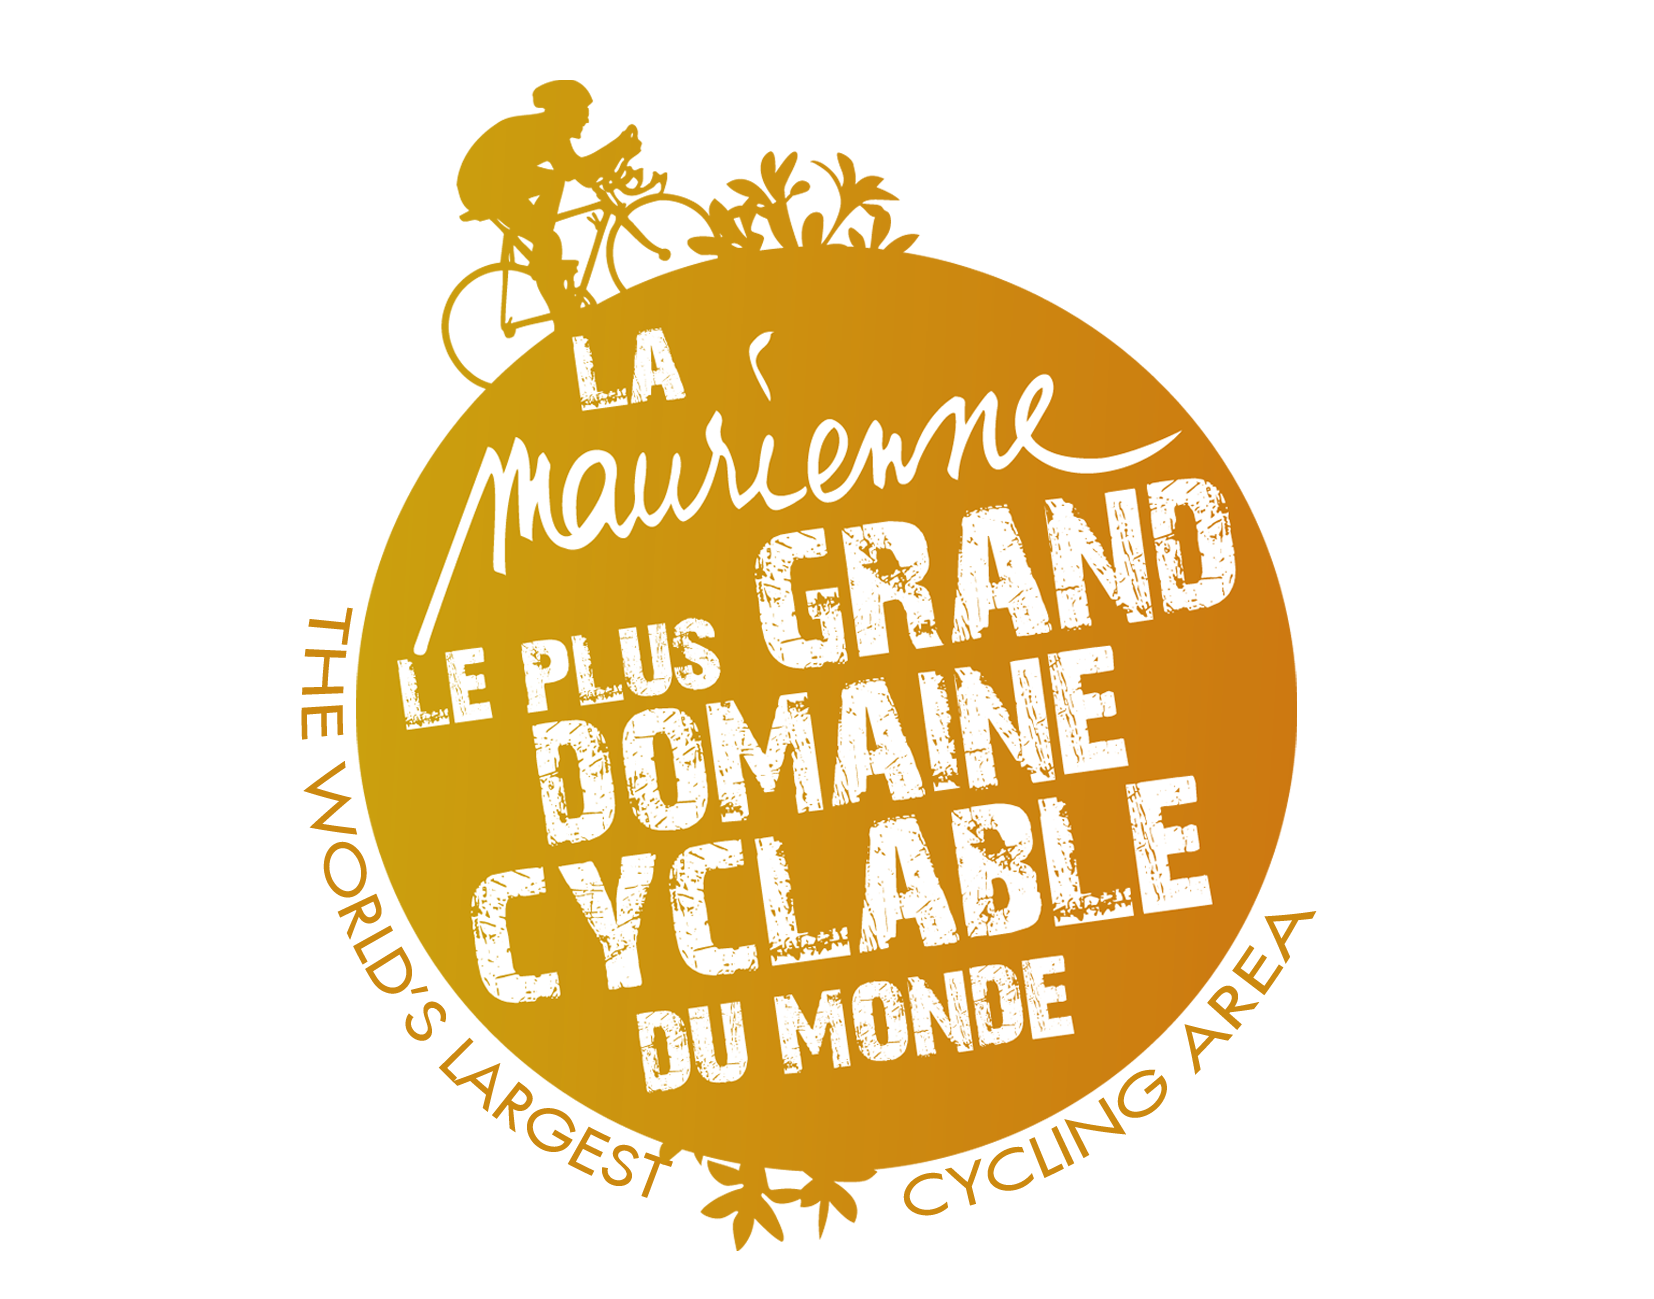 Maurienne, the world's largest cycling area